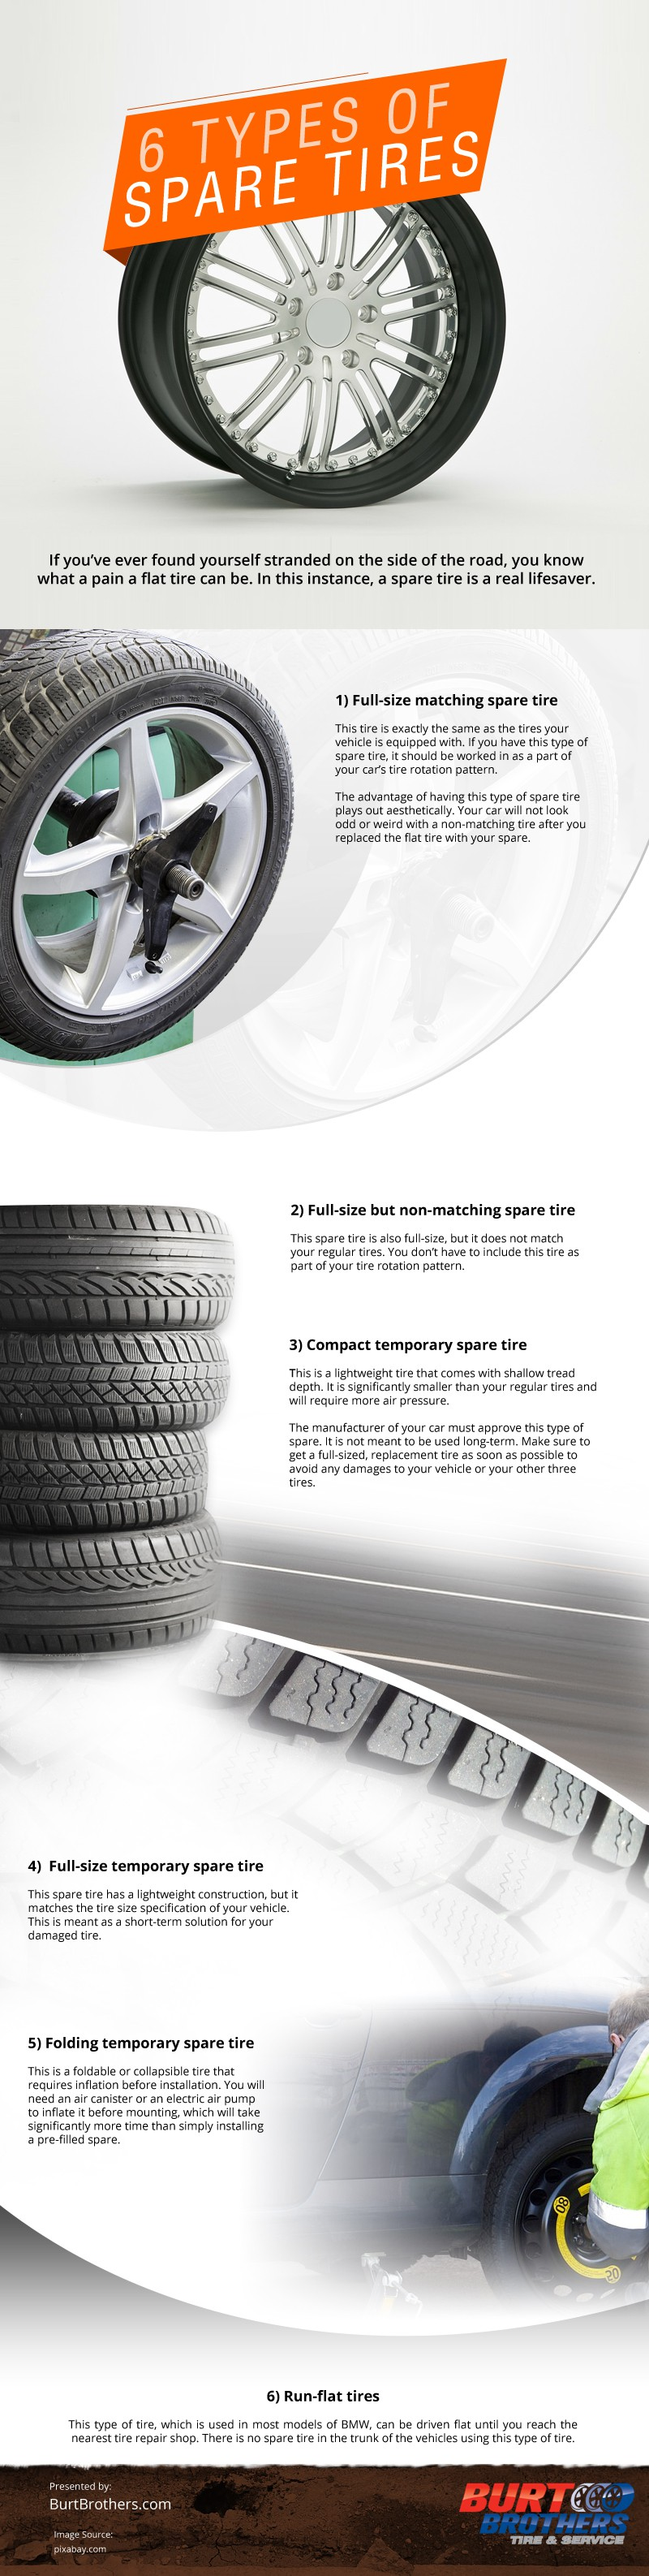 6 Types of Spare Tires [infographic]